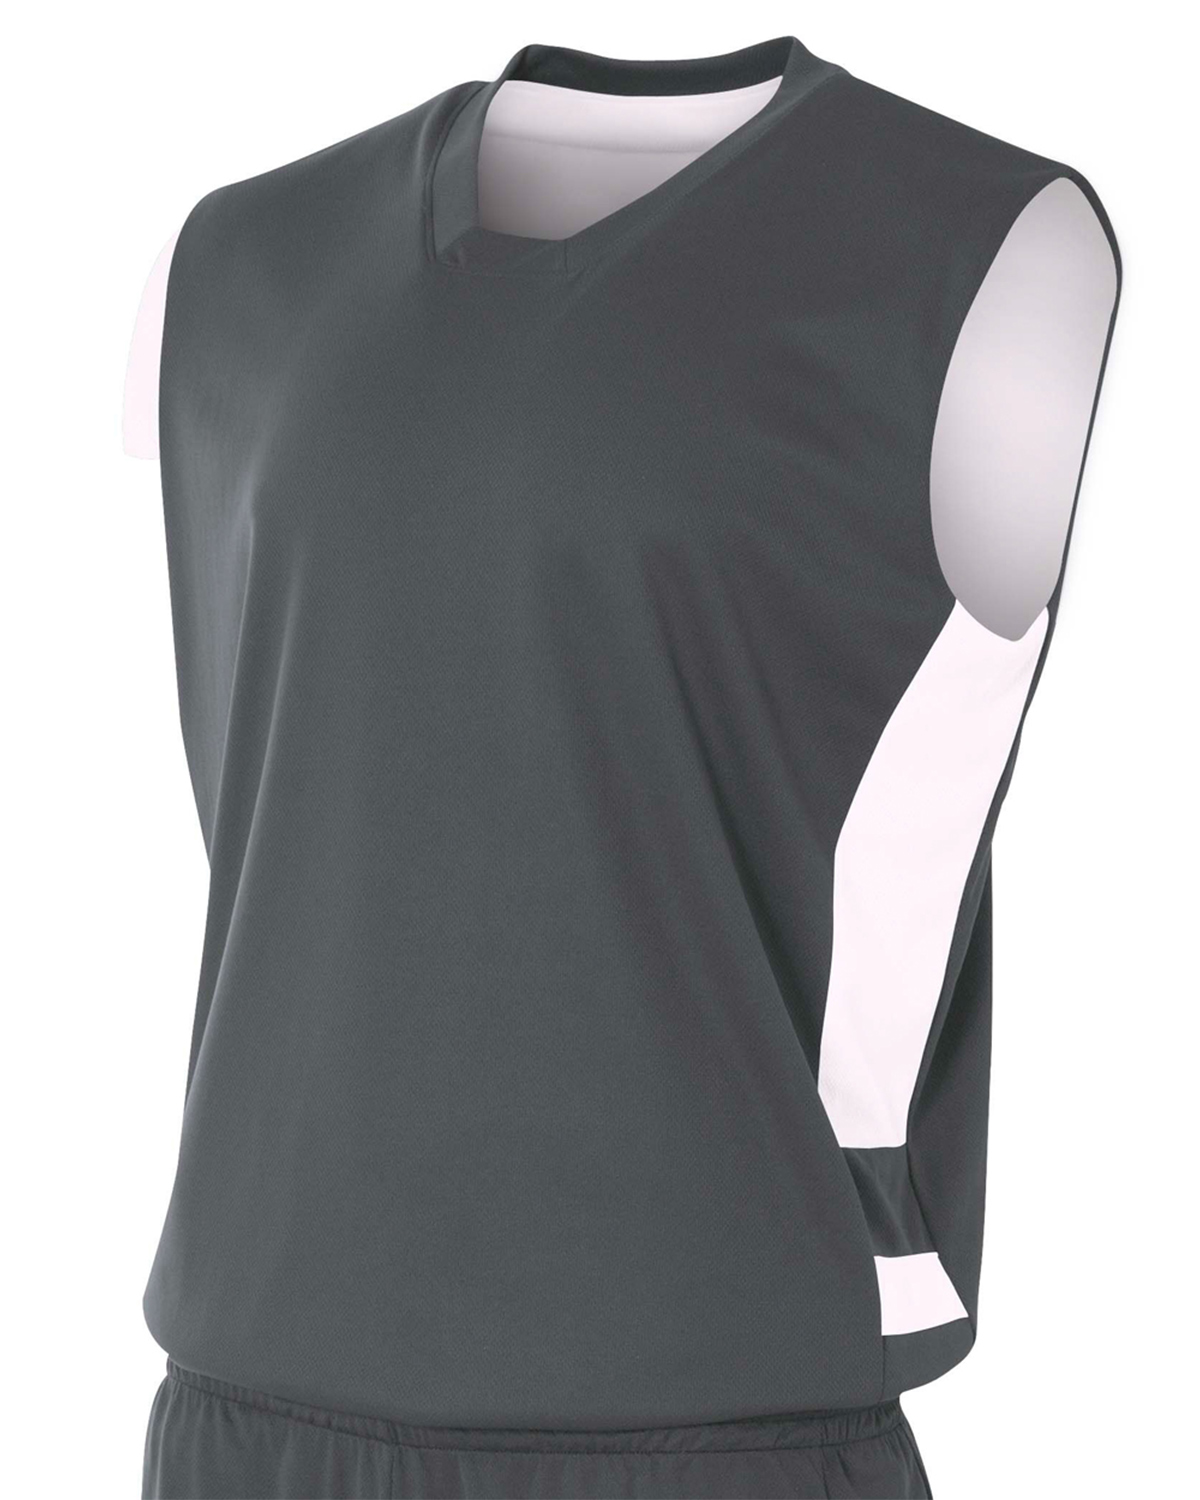 A4 Drop Ship N2349 - Adult Reversible Speedway Muscle Shirt